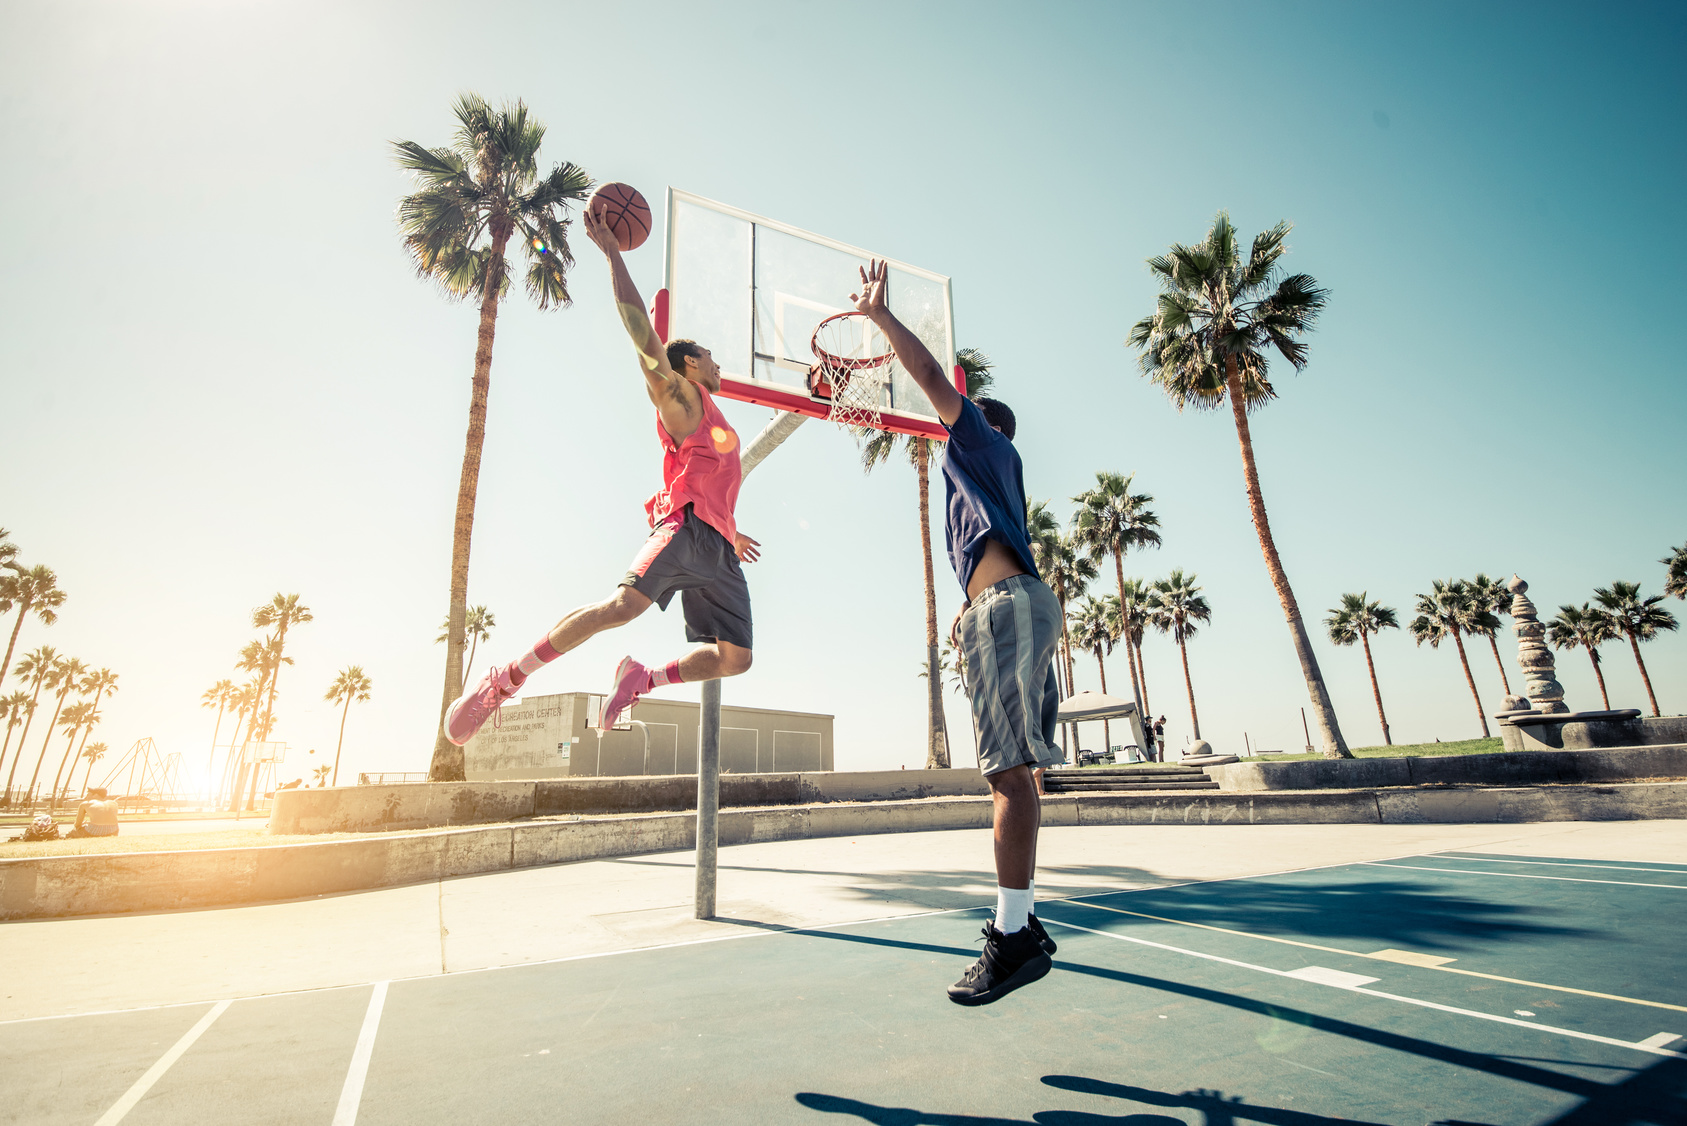 Playing Basketball in Venice Beach Venice Beach 1687x1126